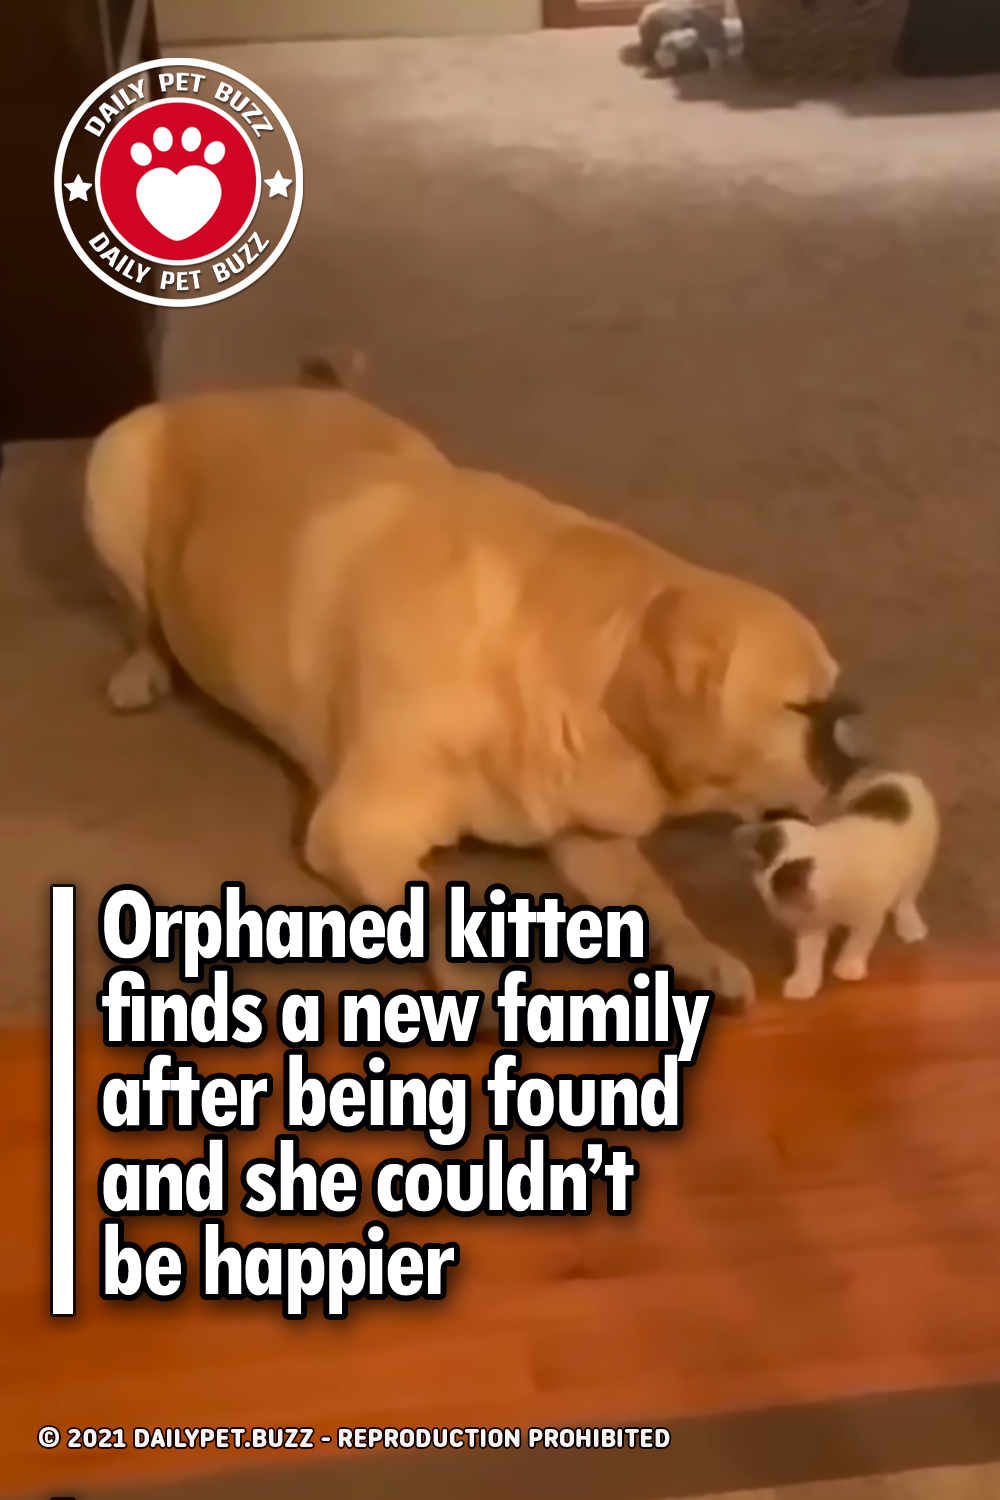 Orphaned kitten finds a new family after being found and she couldn't be happier